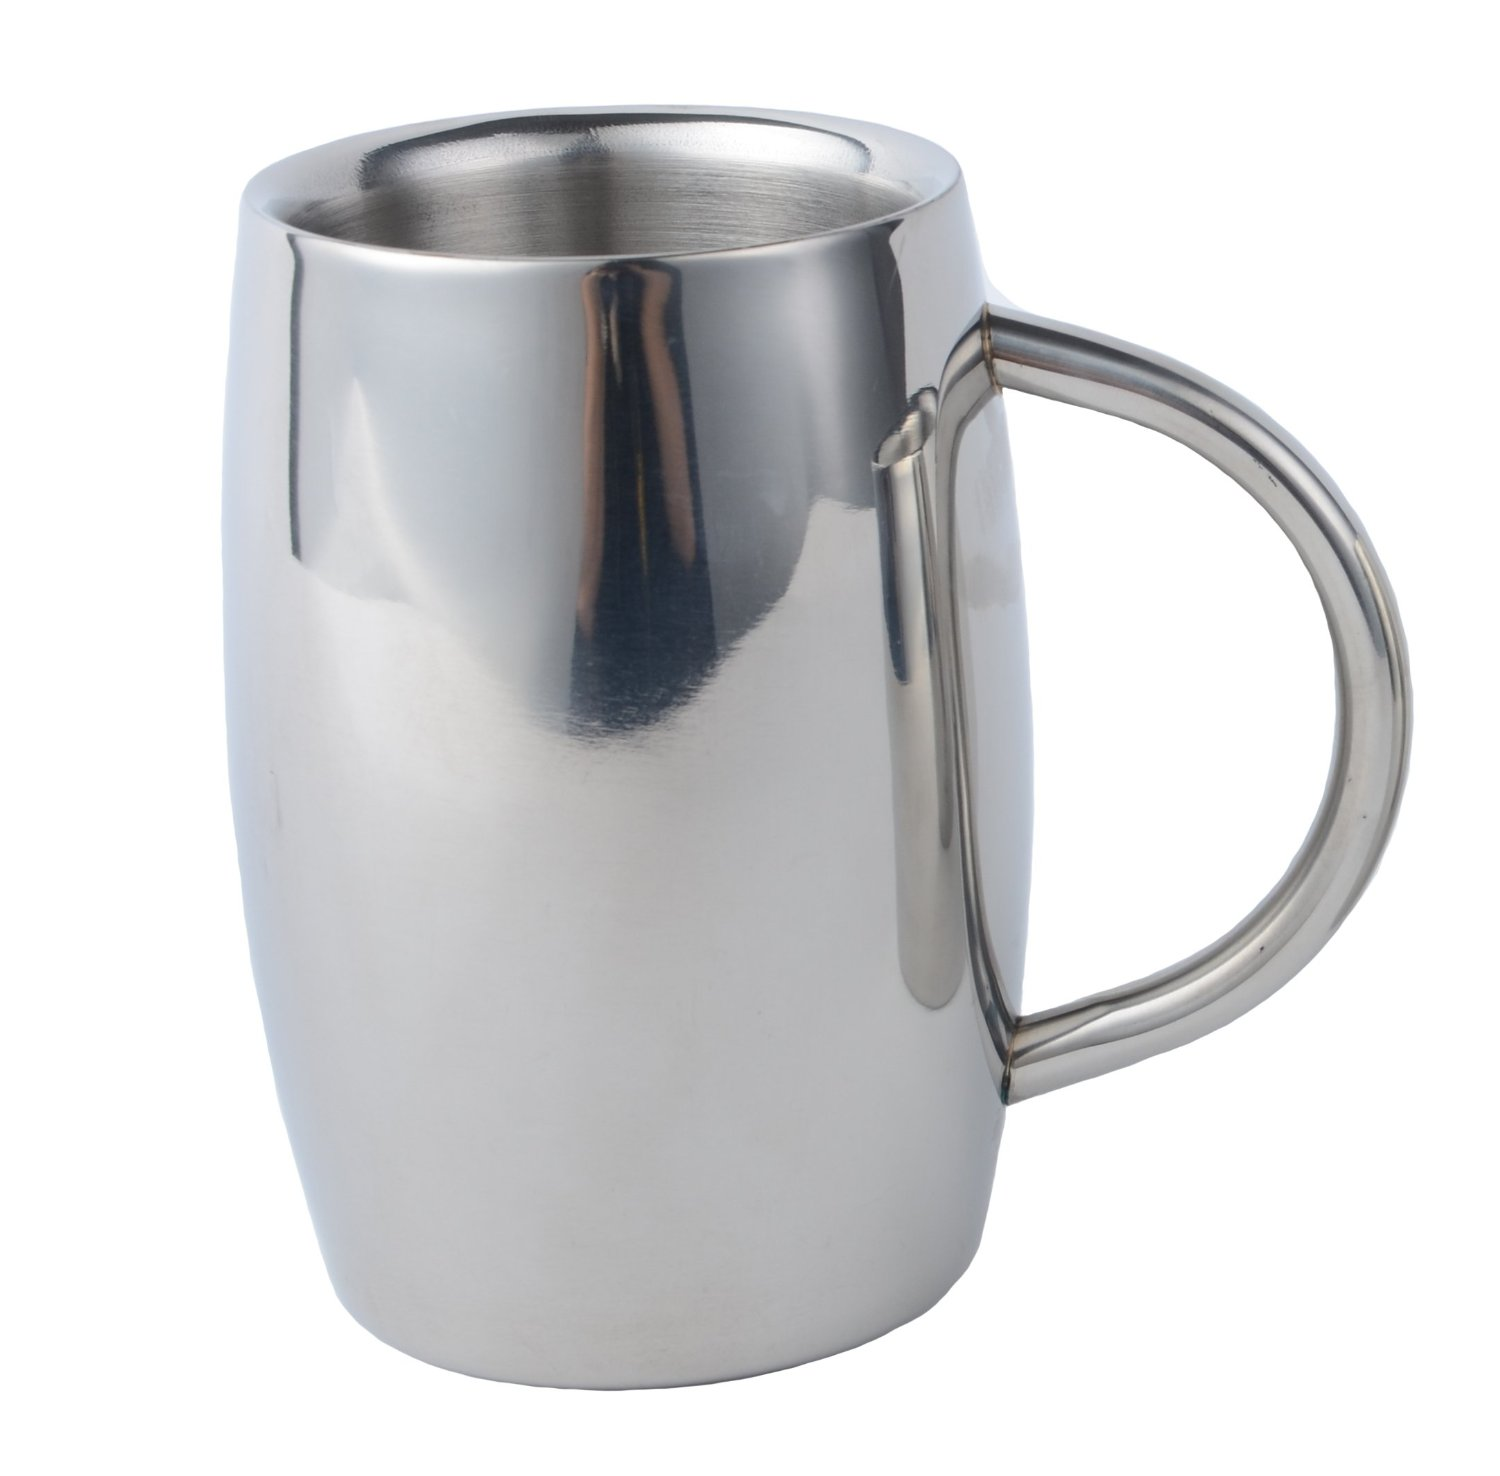 Inexpensive Mugs Amazon Discount Product Review Vanday Stainless Steel